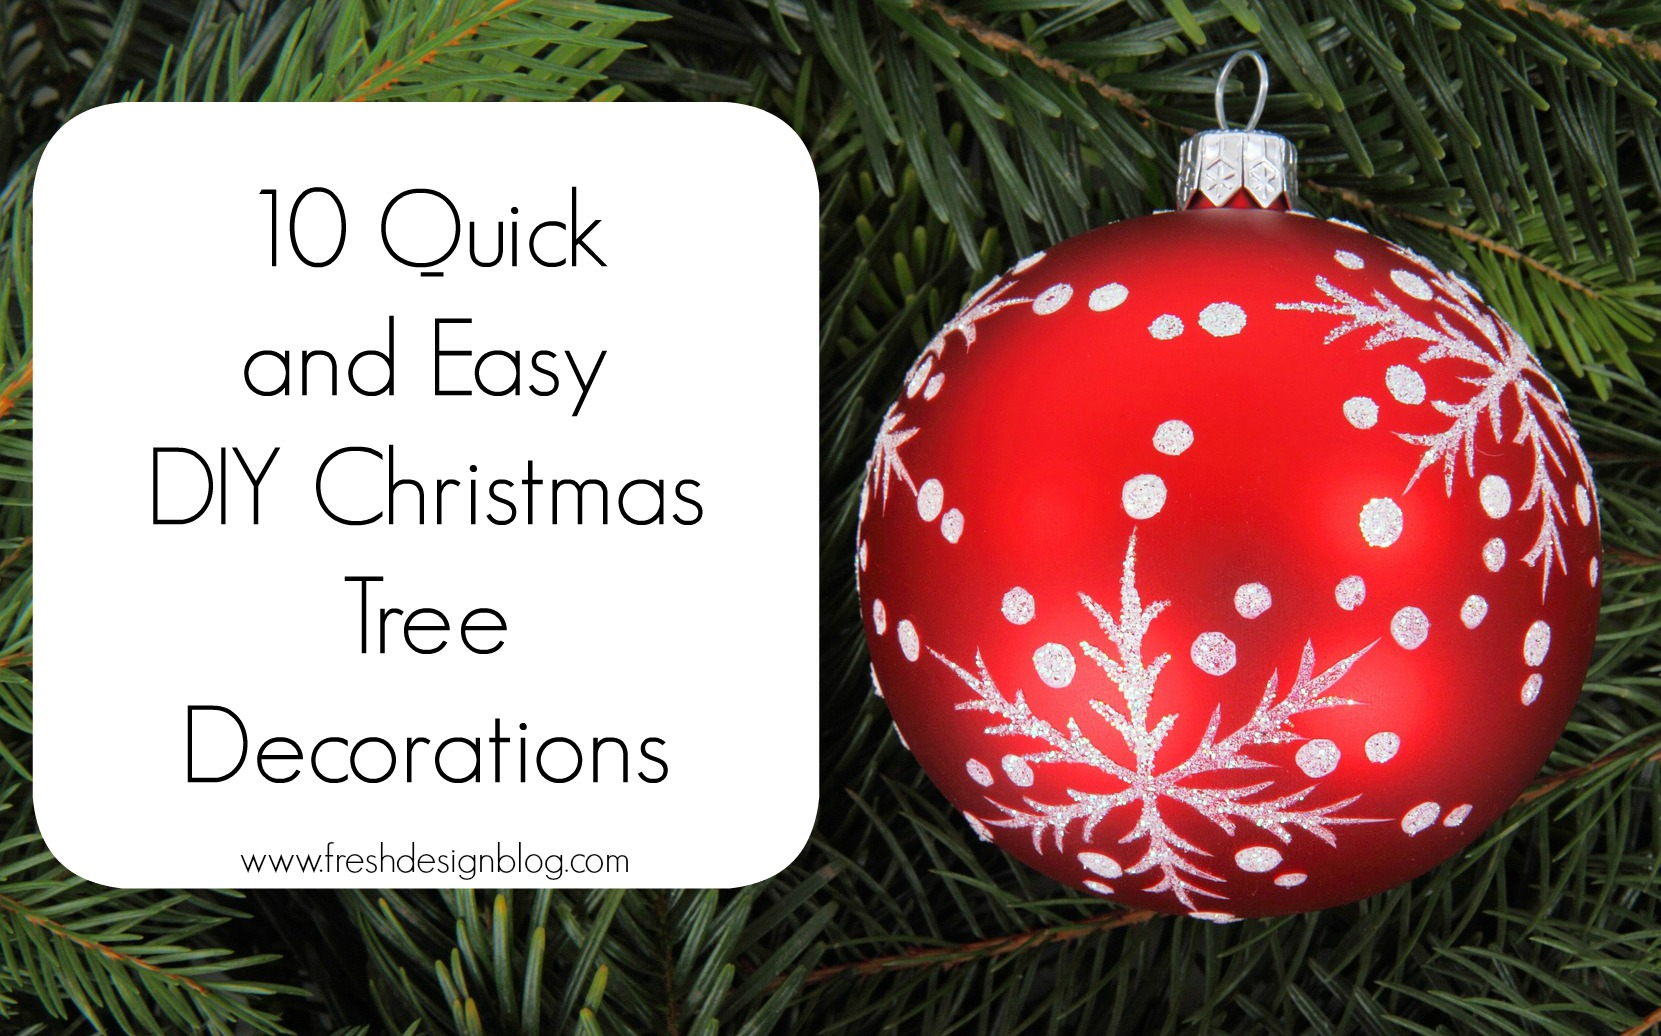 Easy christmas decorations to make at home 10 quick and for Christmas tree decorations you can make at home